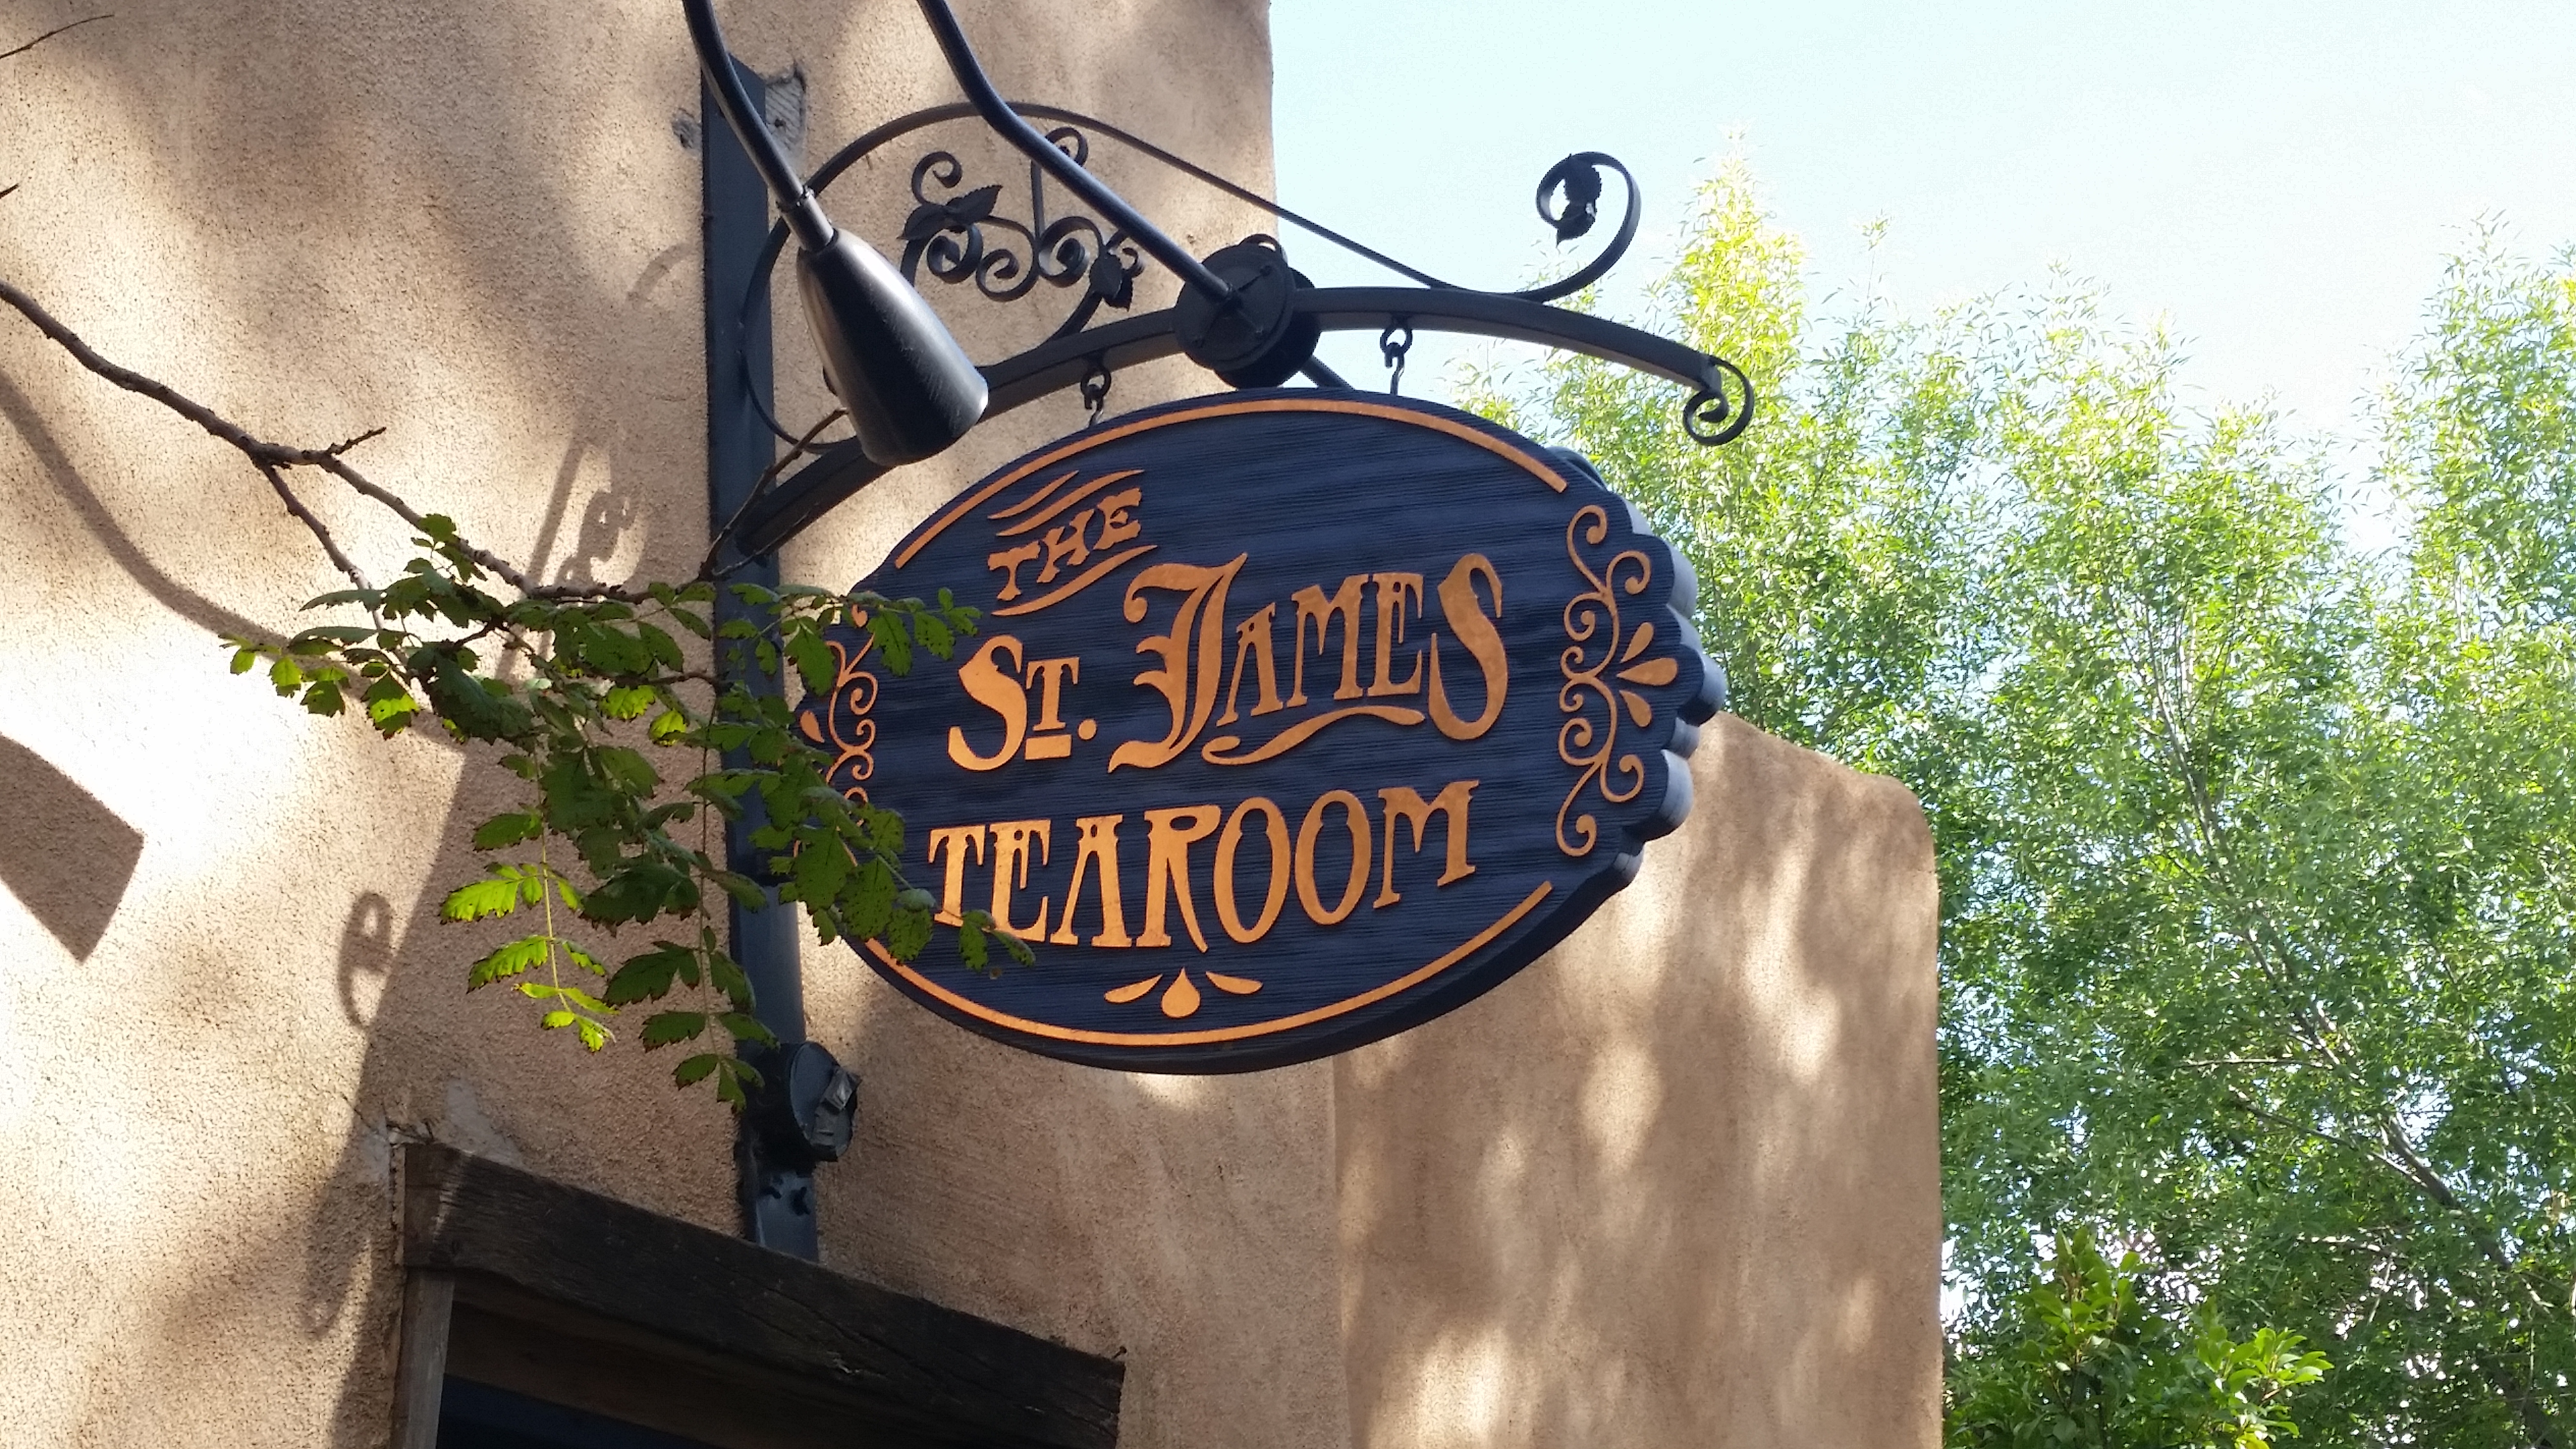 St. James Tearoom: A Sweet Respite from a Hectic World | Eating ...